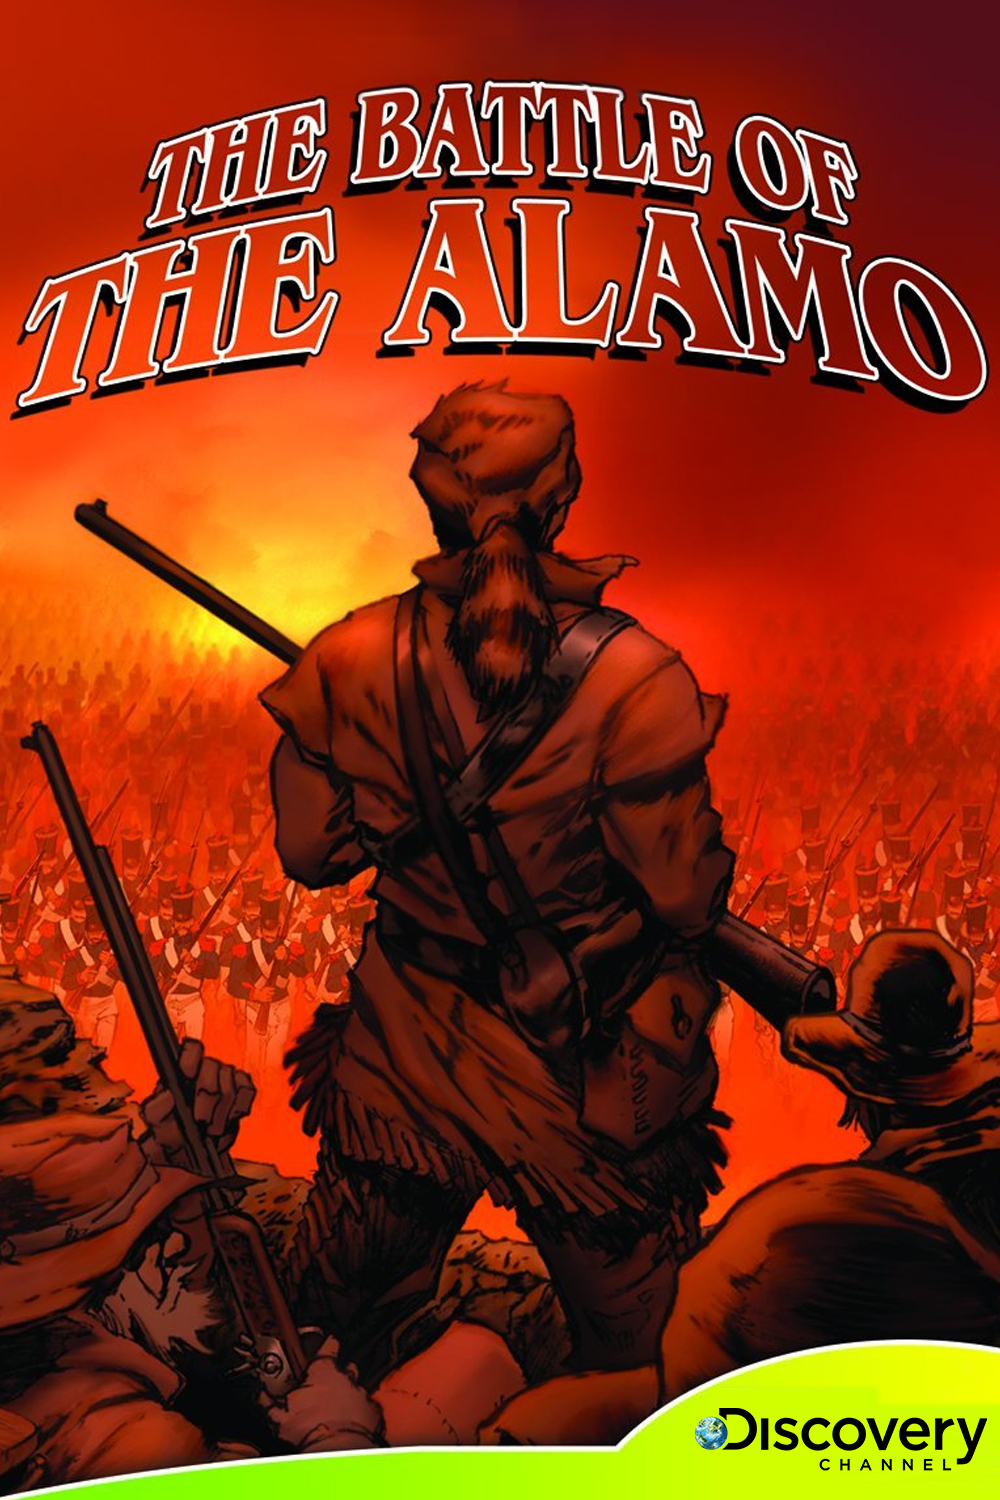 an analysis of the battle of the alamo as a pivotal moment of texas history